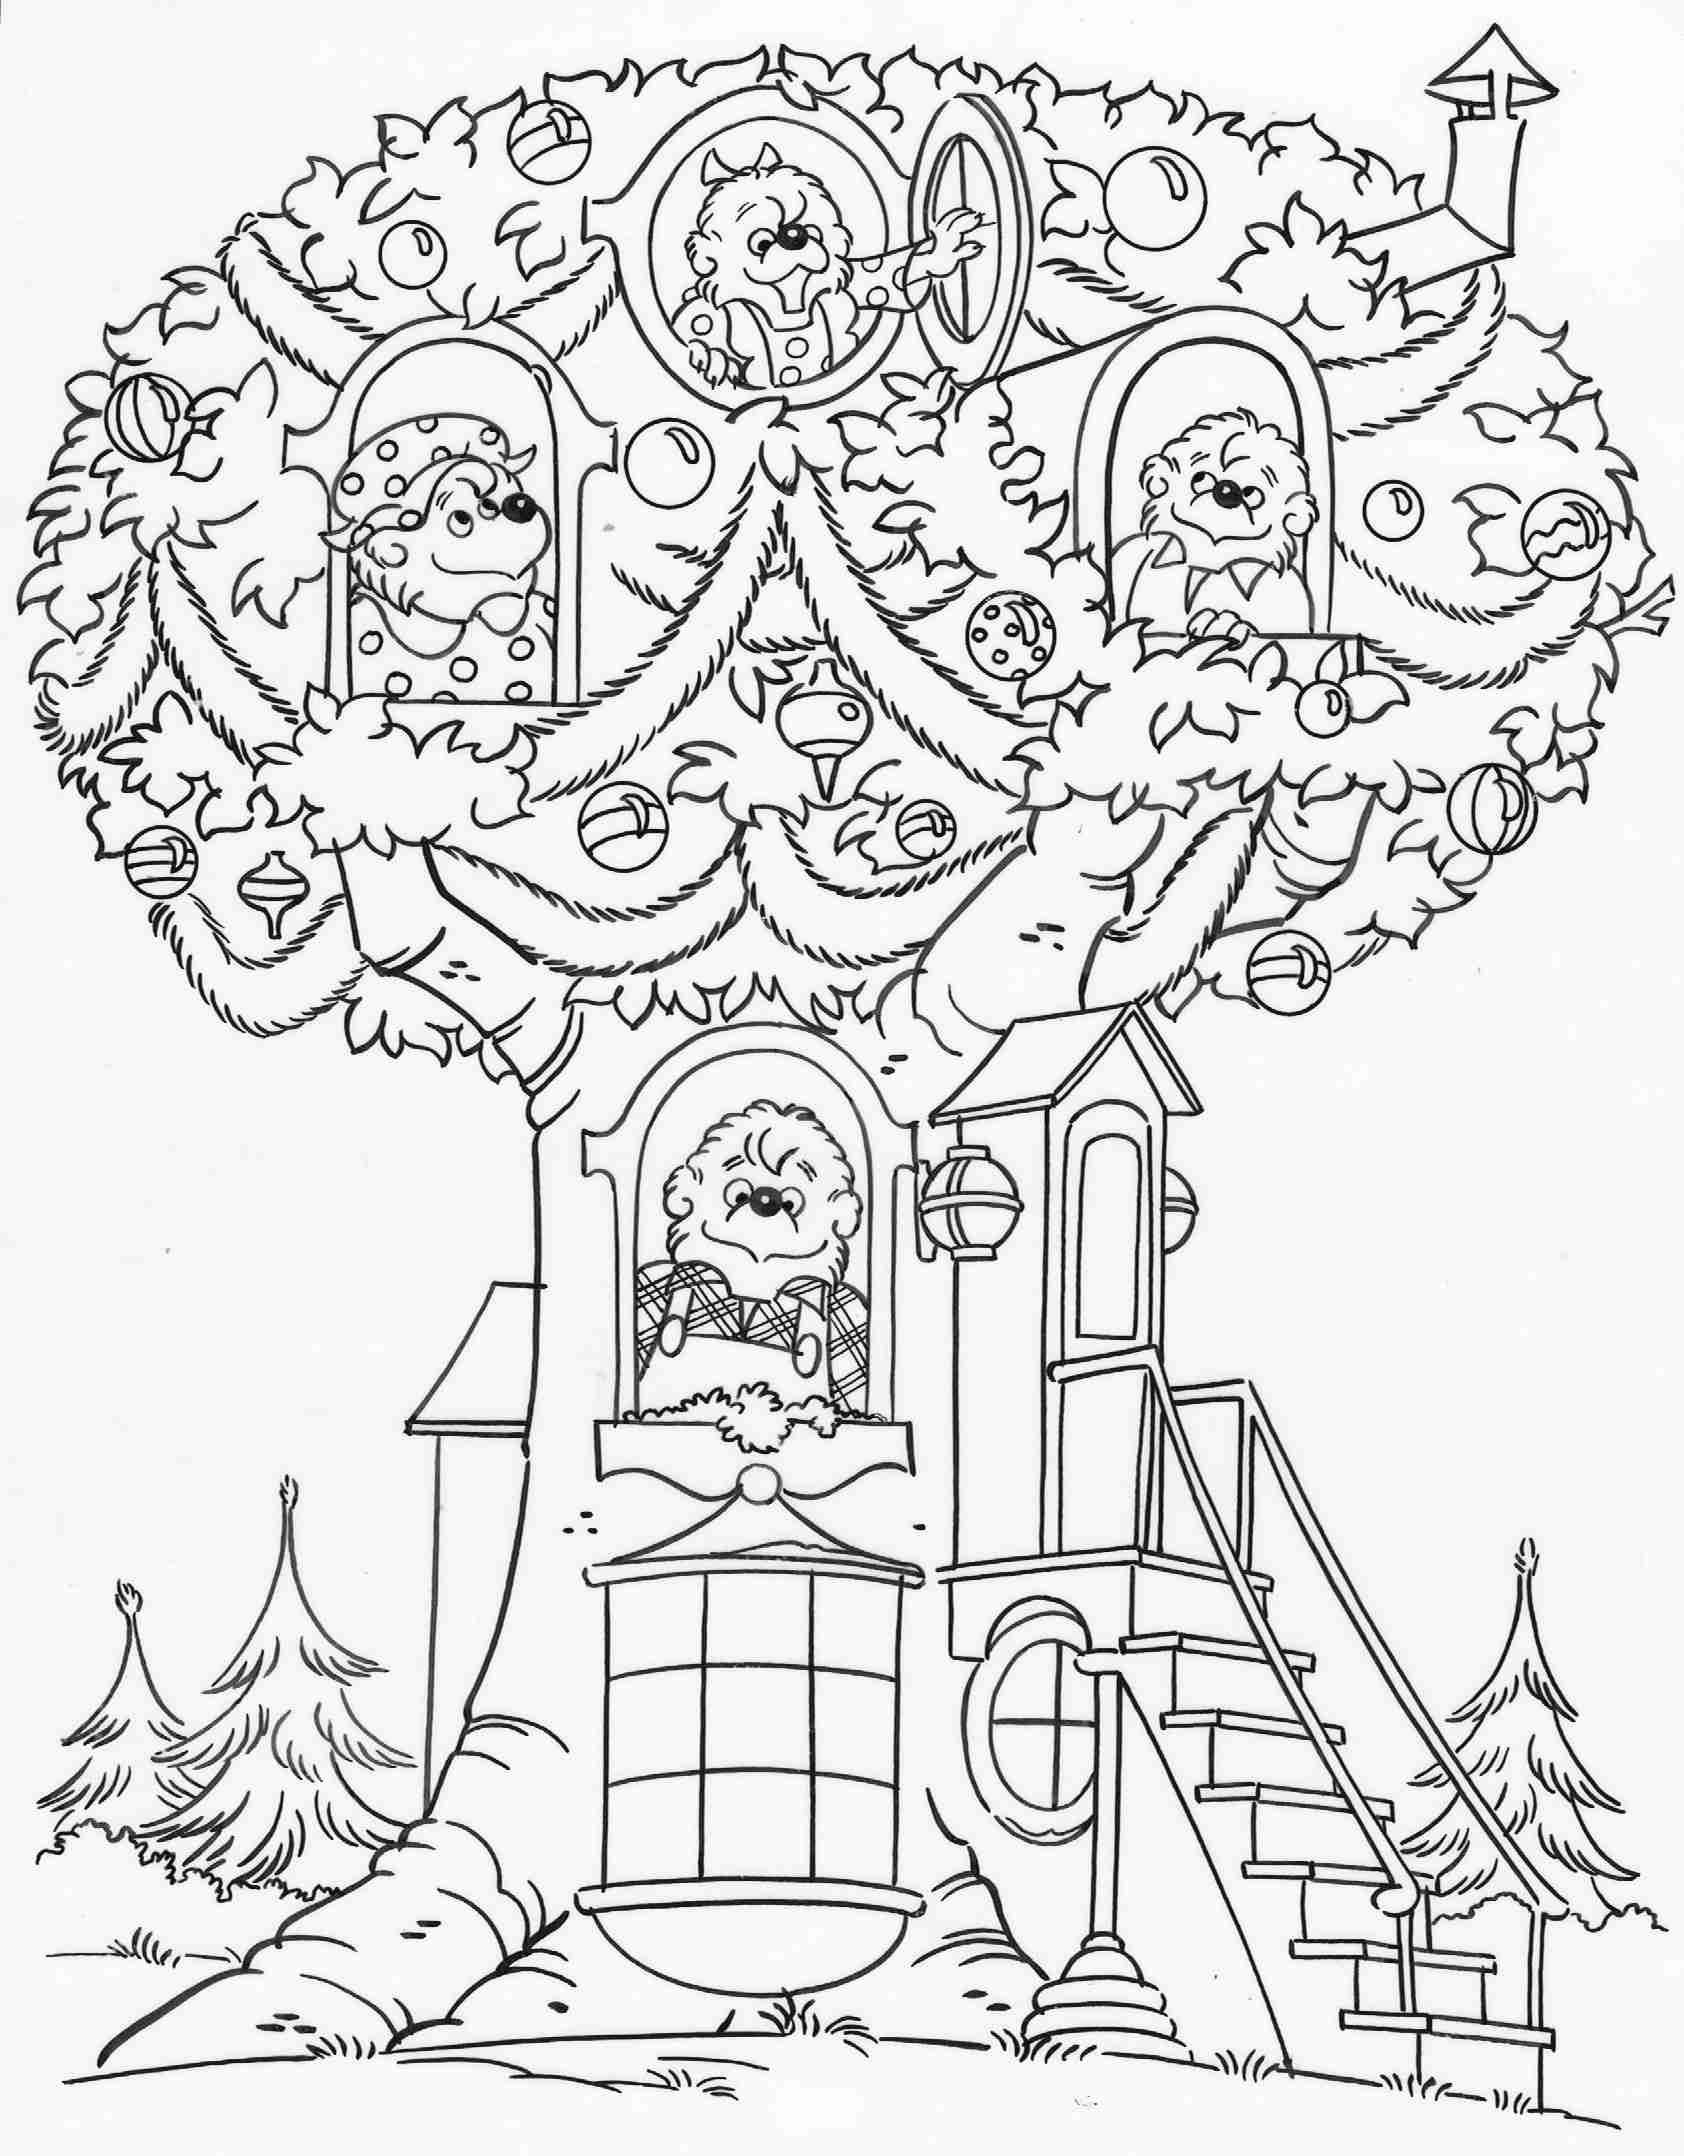 Elegant Berenstain Bears Coloring Pages In Free Coloring Kids With Berenstain Bears Bear Coloring Pages Teddy Bear Coloring Pages Christmas Tree Coloring Page